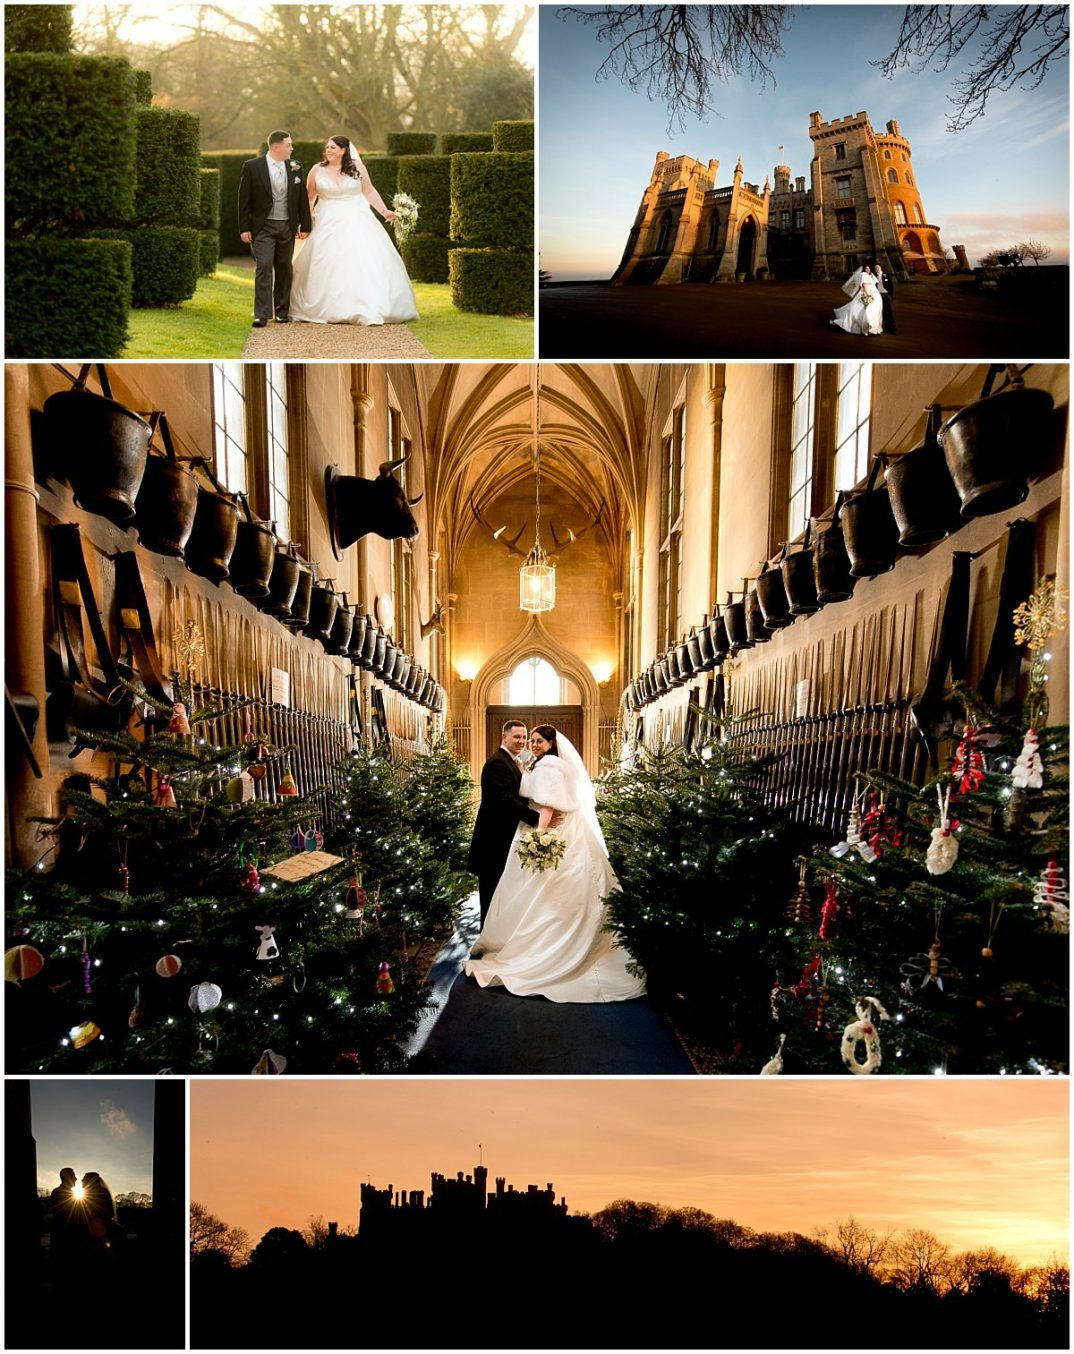 Bride and groom photographs at Belvoir Castle